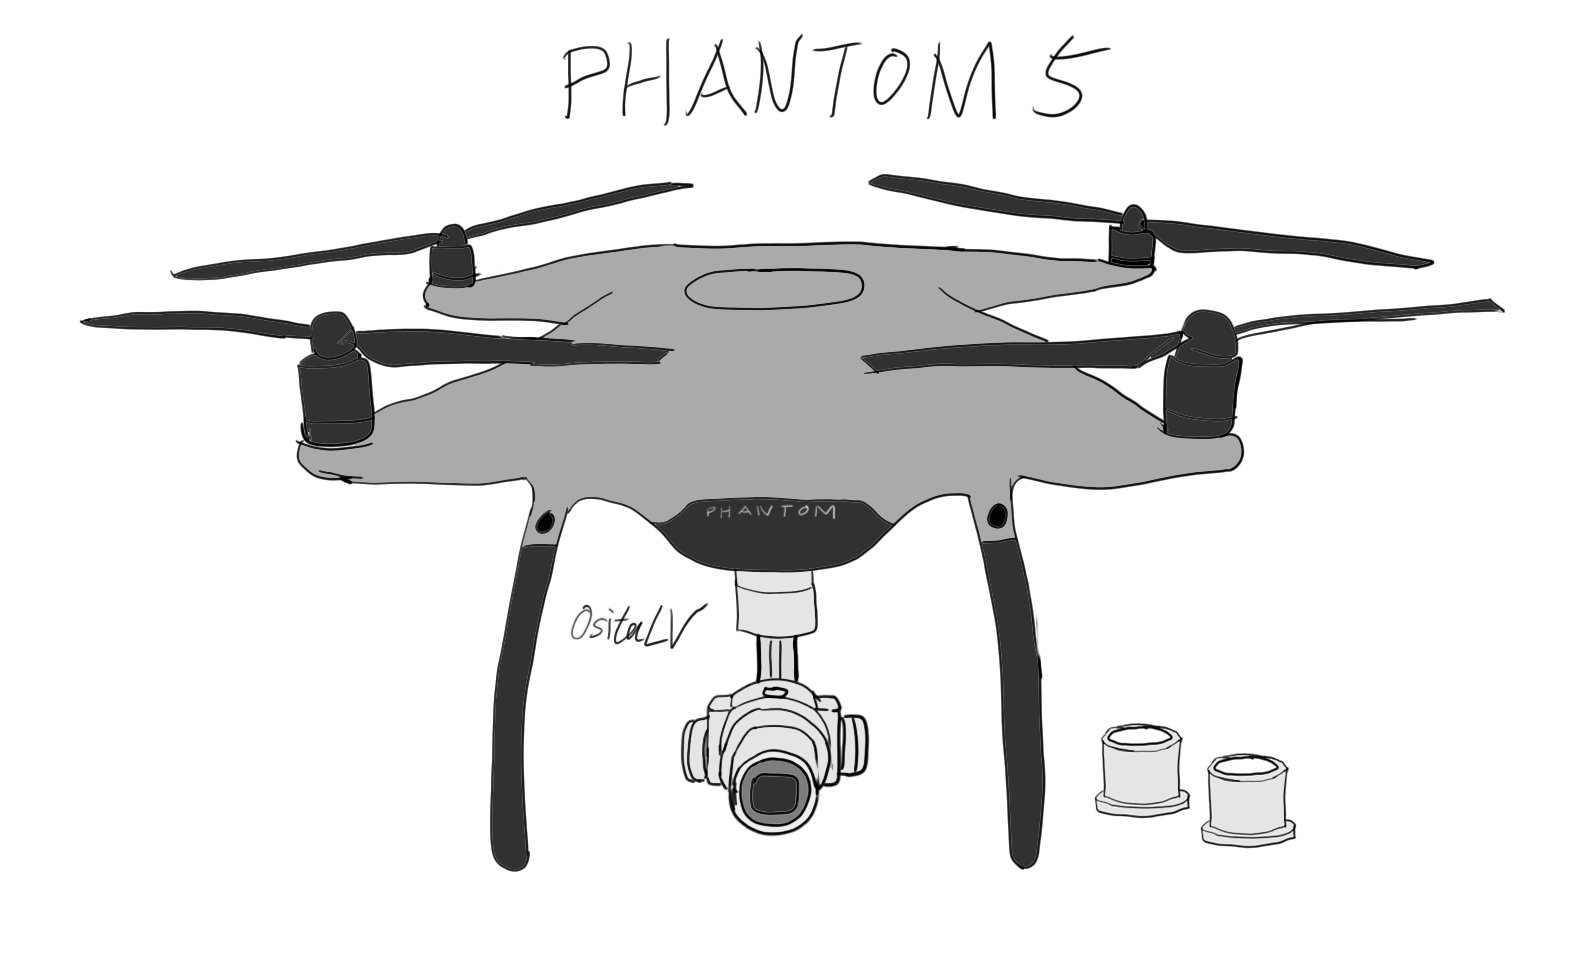 More Leaked Pictures Of The Rumored DJI Phantom 5 Drone With Interchangeable Lens Camera